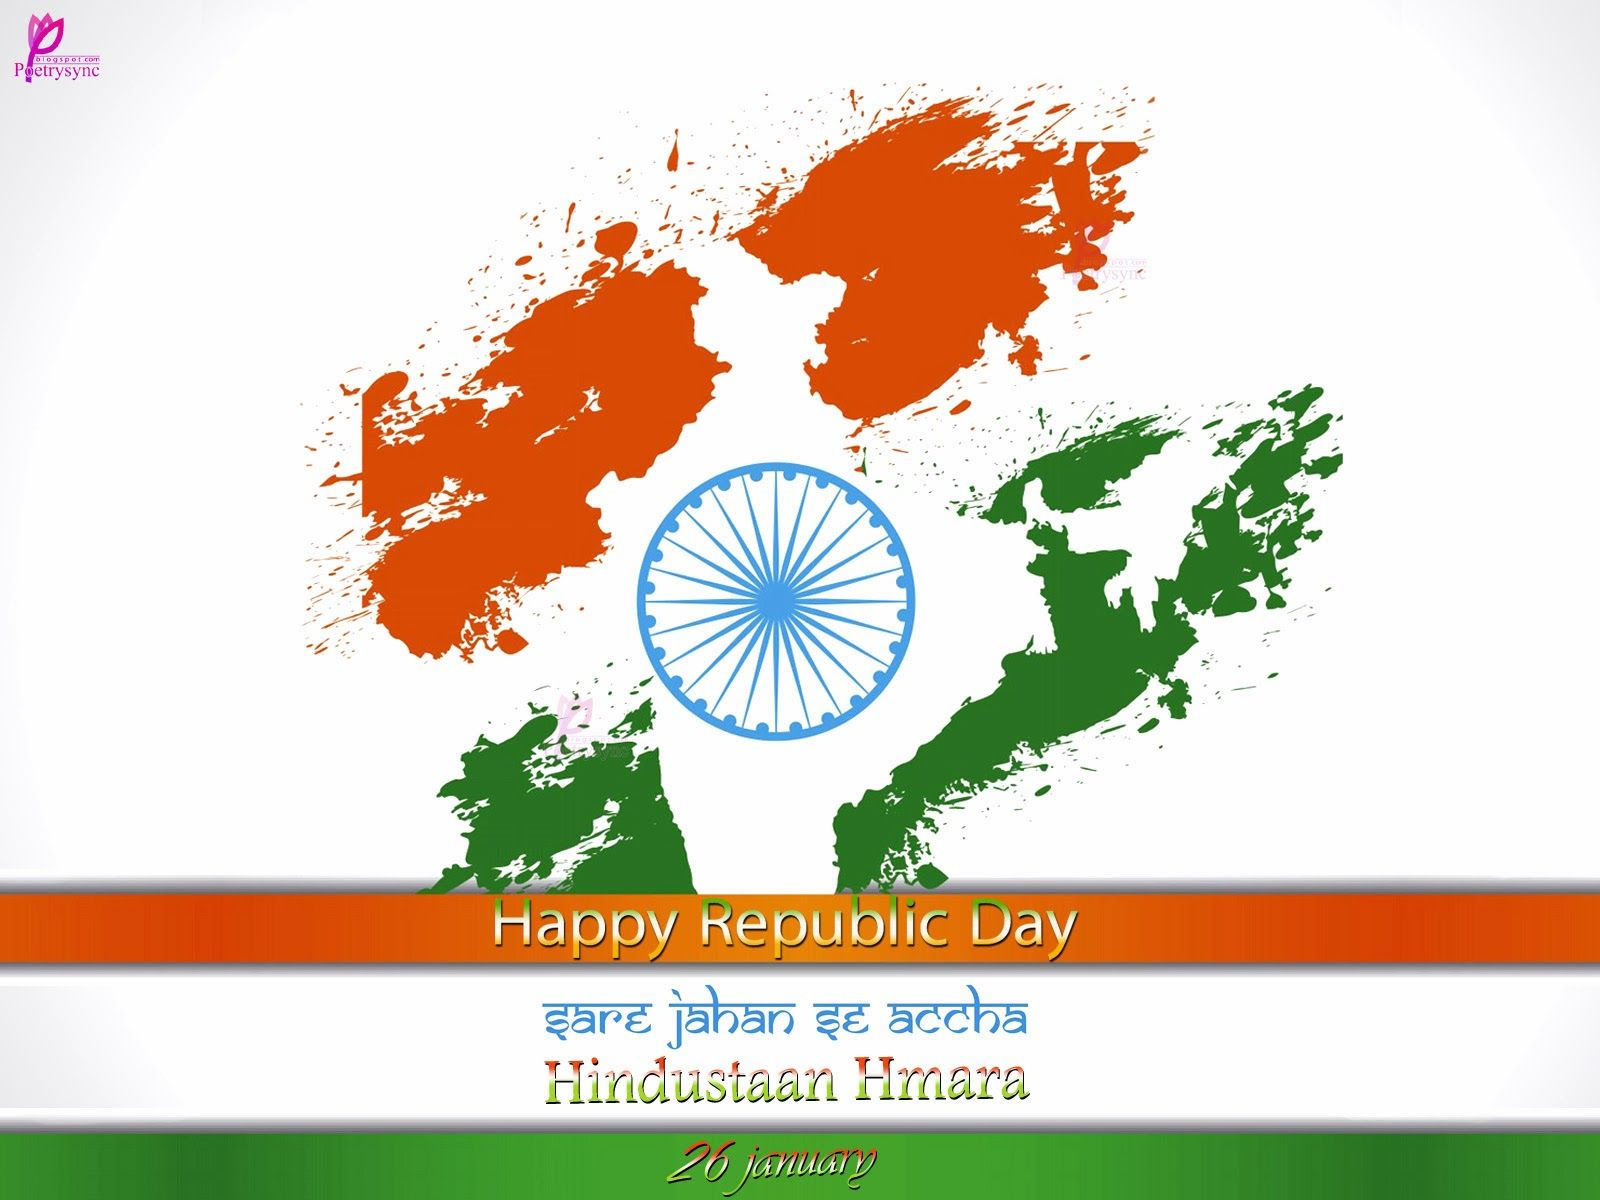 26 january wisges card image for facebook happy republic day of 26 january wisges card image for facebook happy republic day of india greetings sms messages and quote wallpaper m4hsunfo